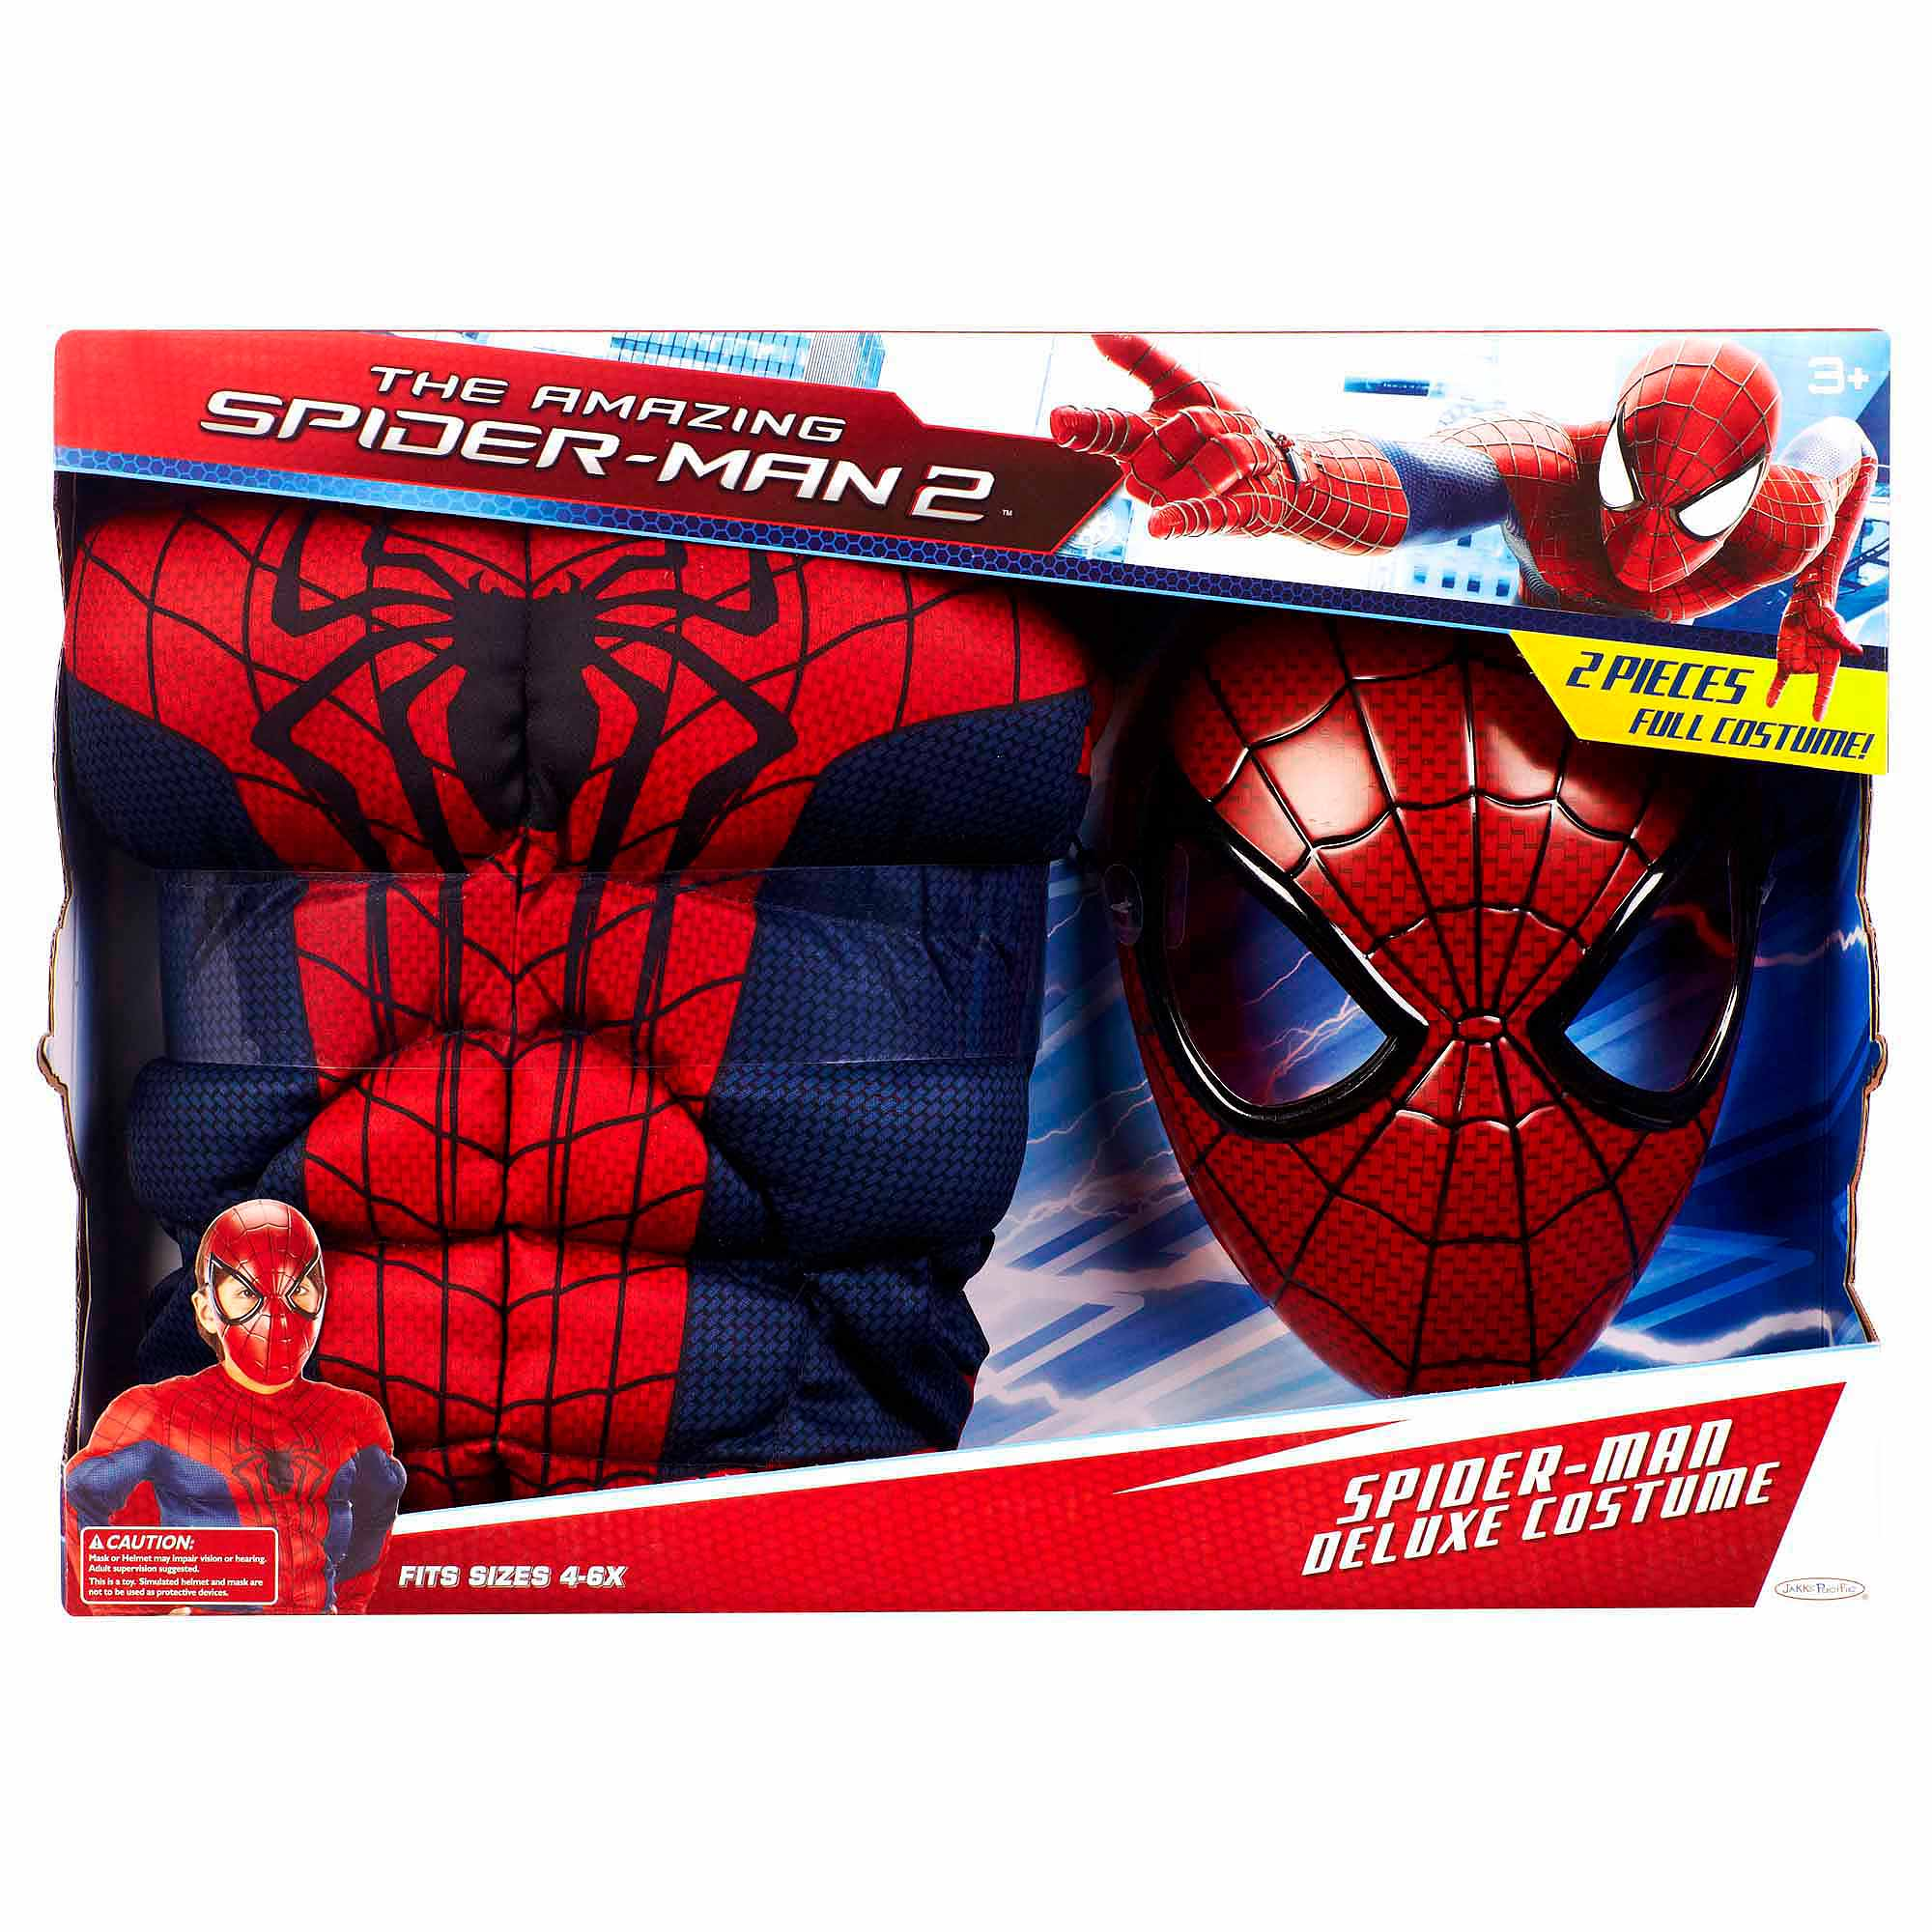 Marvel Spider-Man 2 Deluxe Dress Up